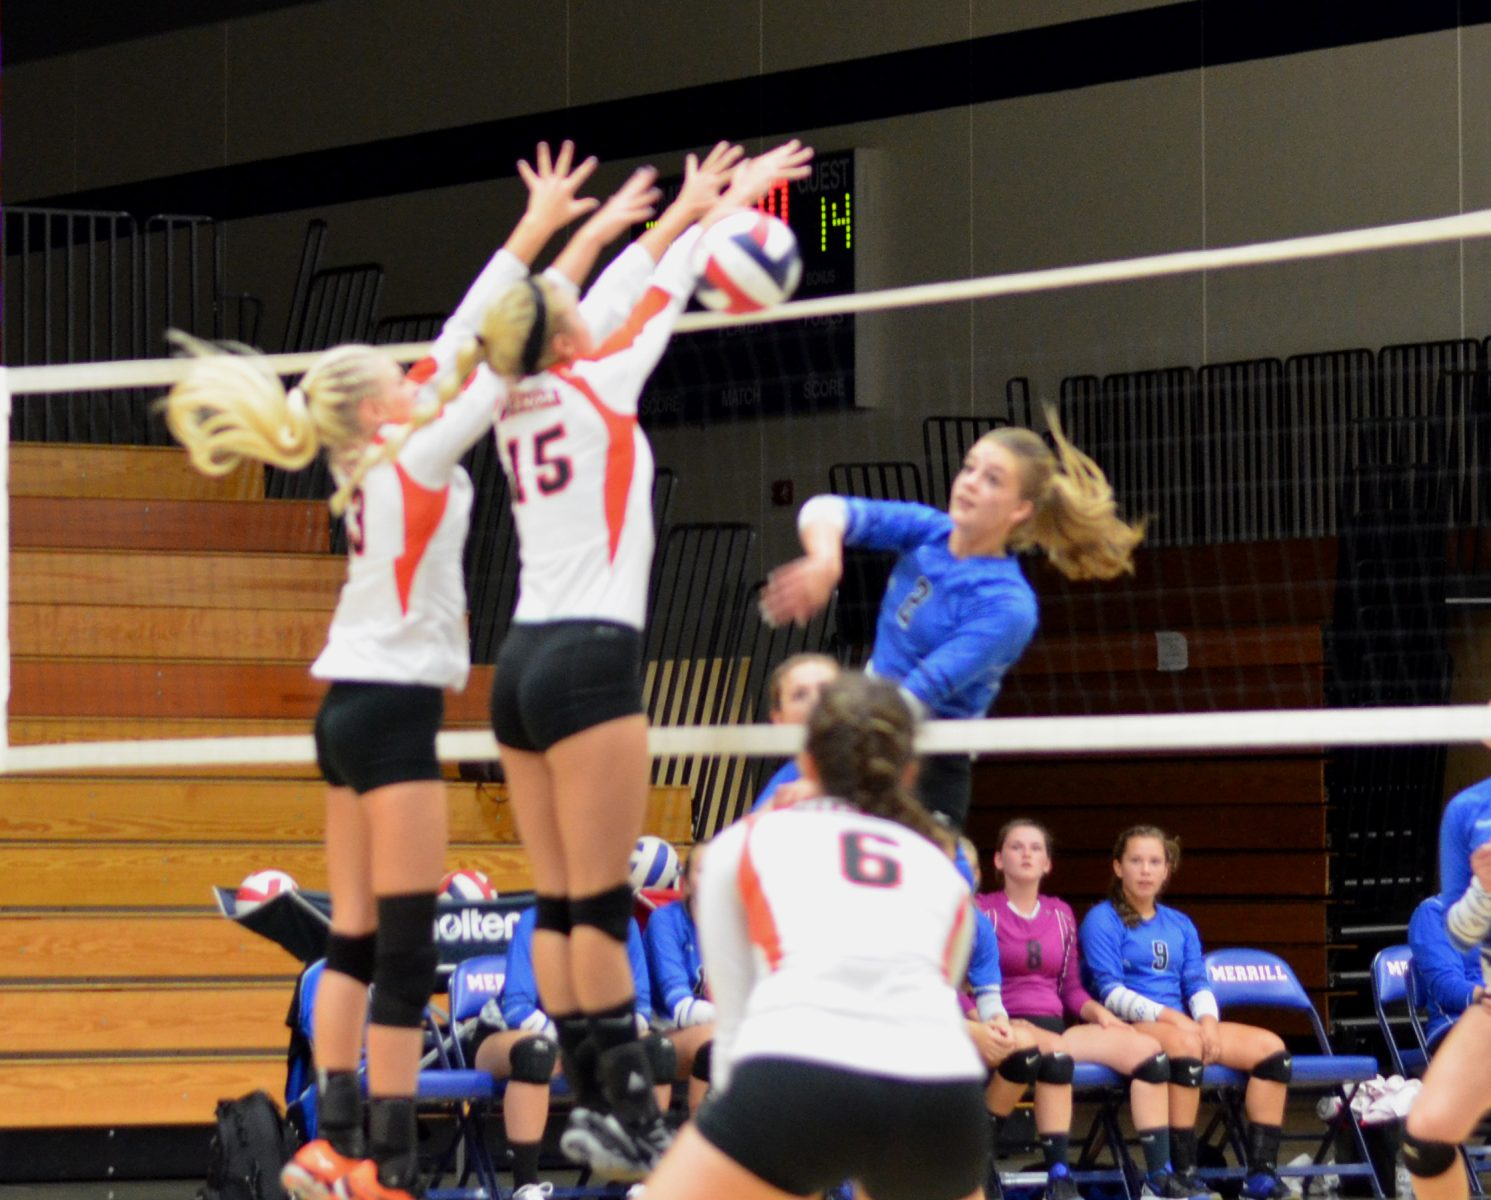 Junior Morgan Wardall fires the ball right past the middle blocker for a kill against Marshfield.